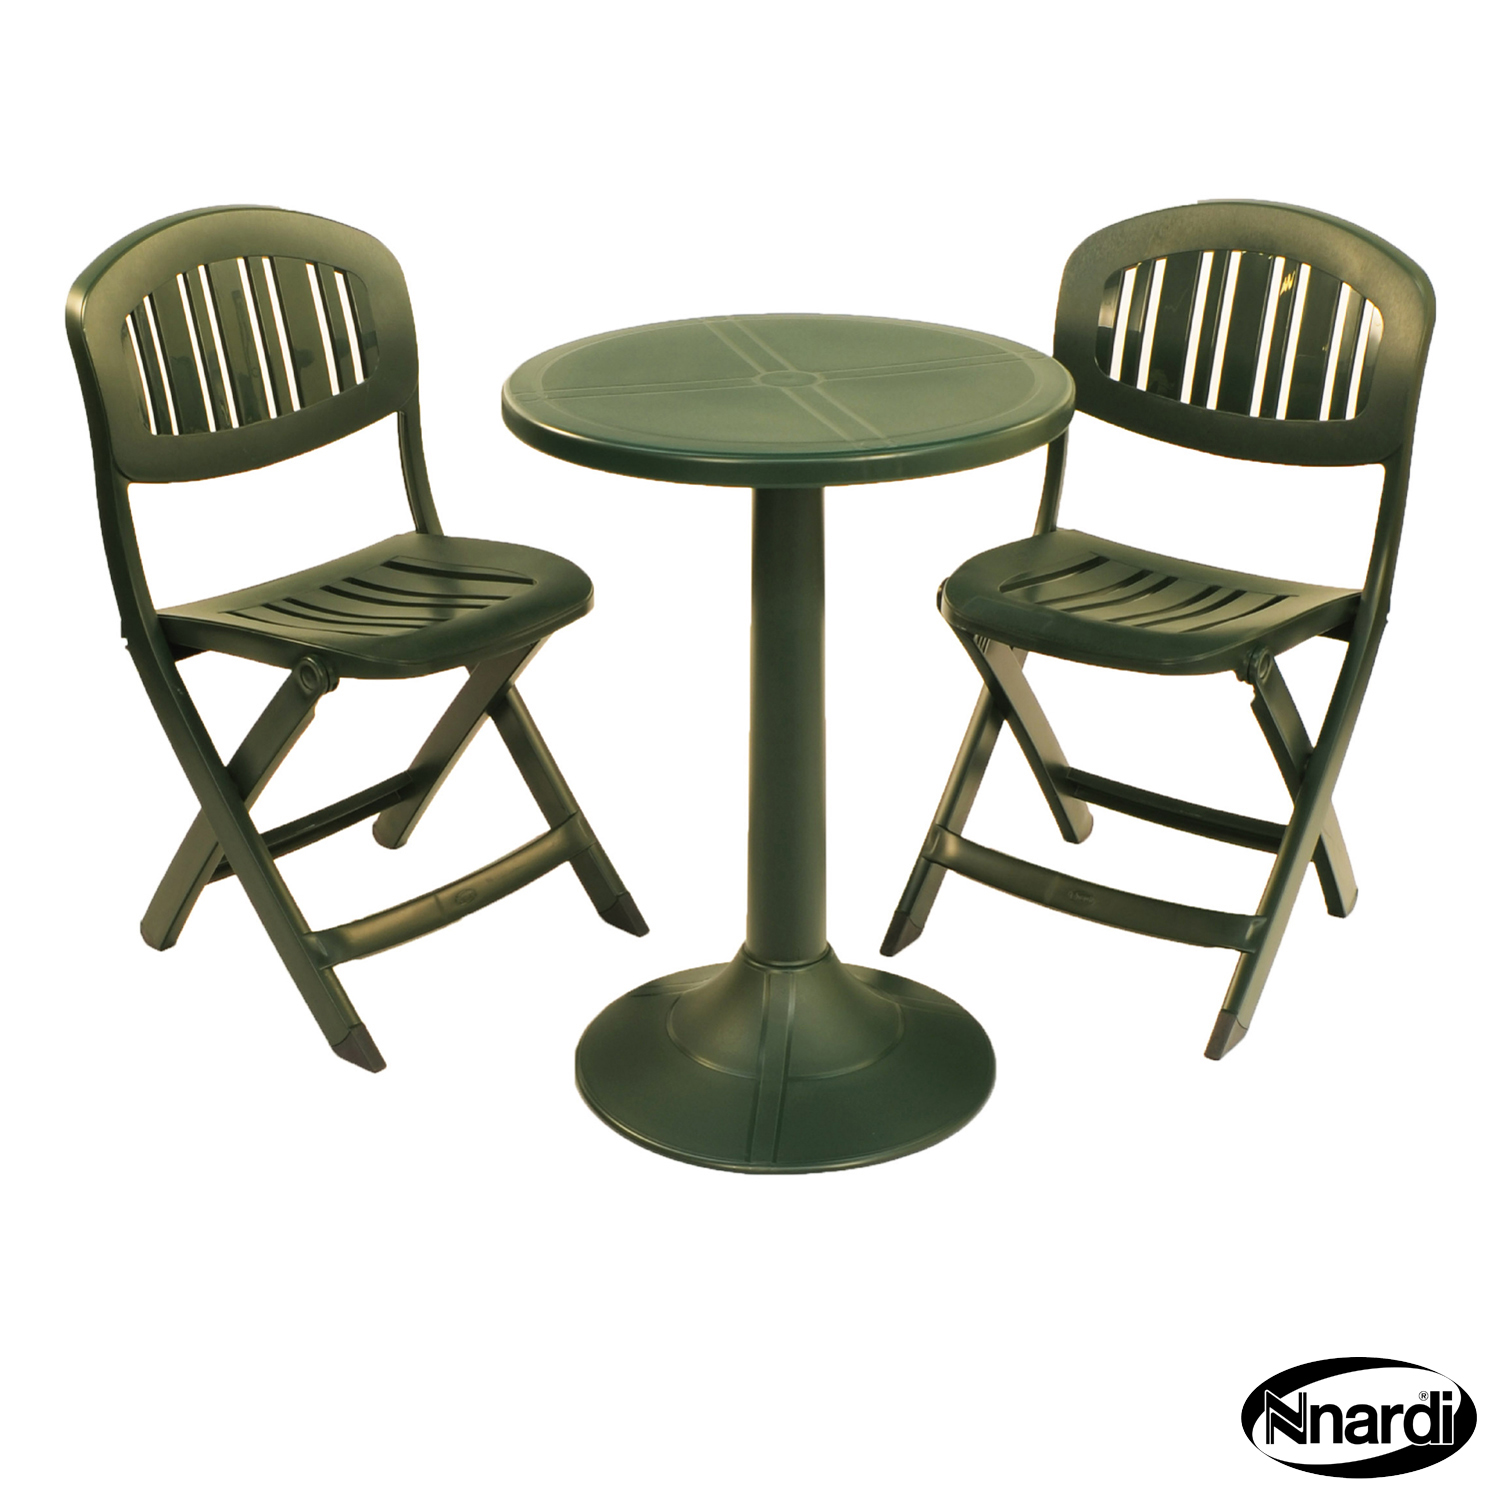 Green Patio Chairs Green Tucano Standard With 02 Green Capri Chairs